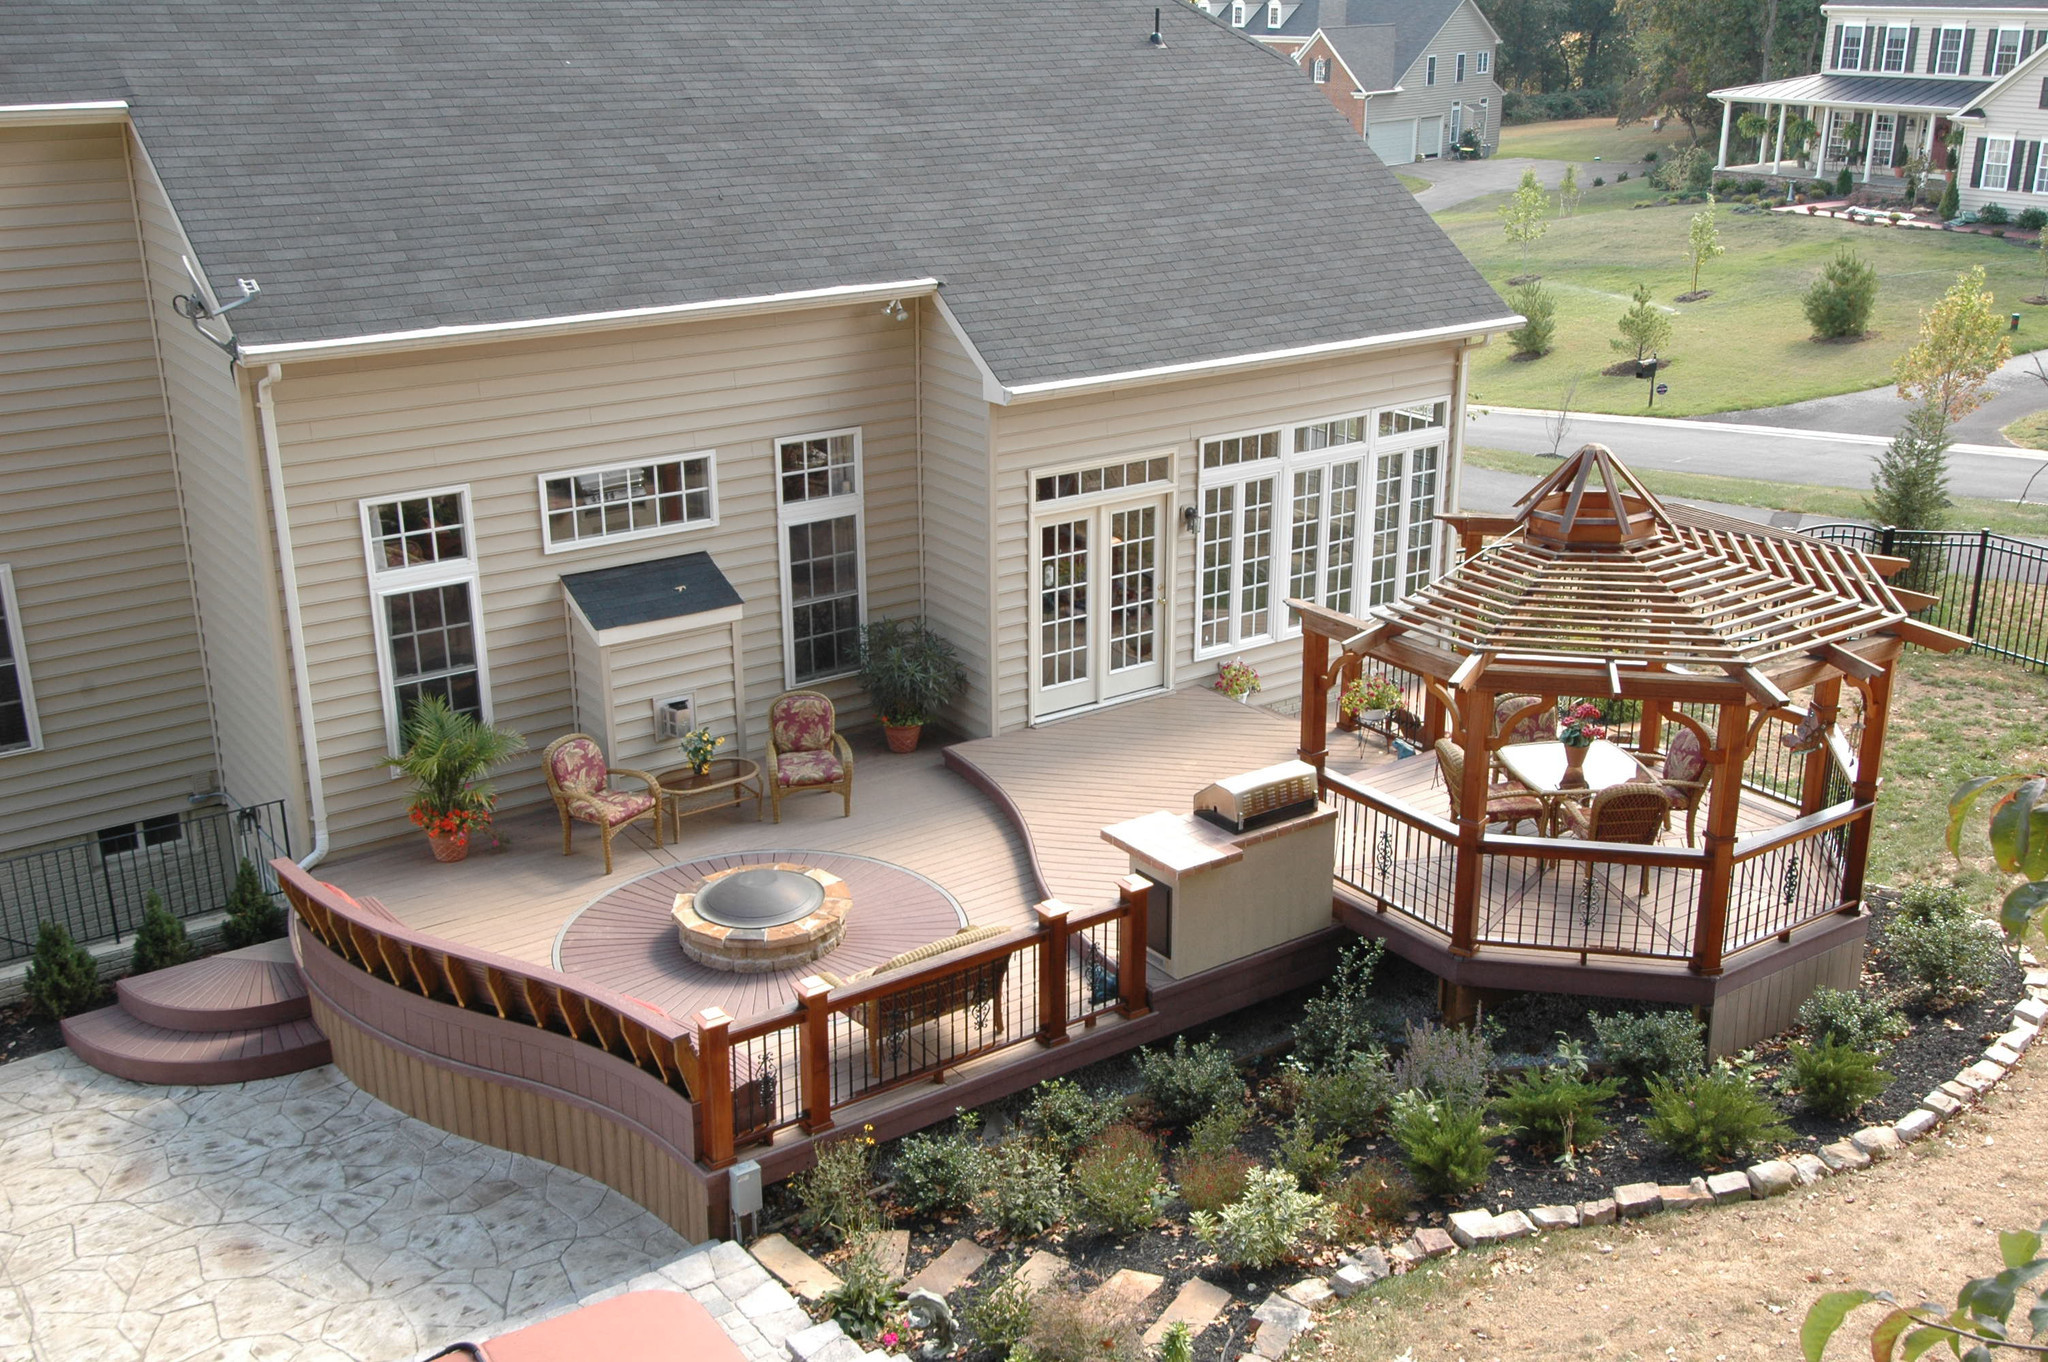 Long-lasting, low-maintenance decks become a reality